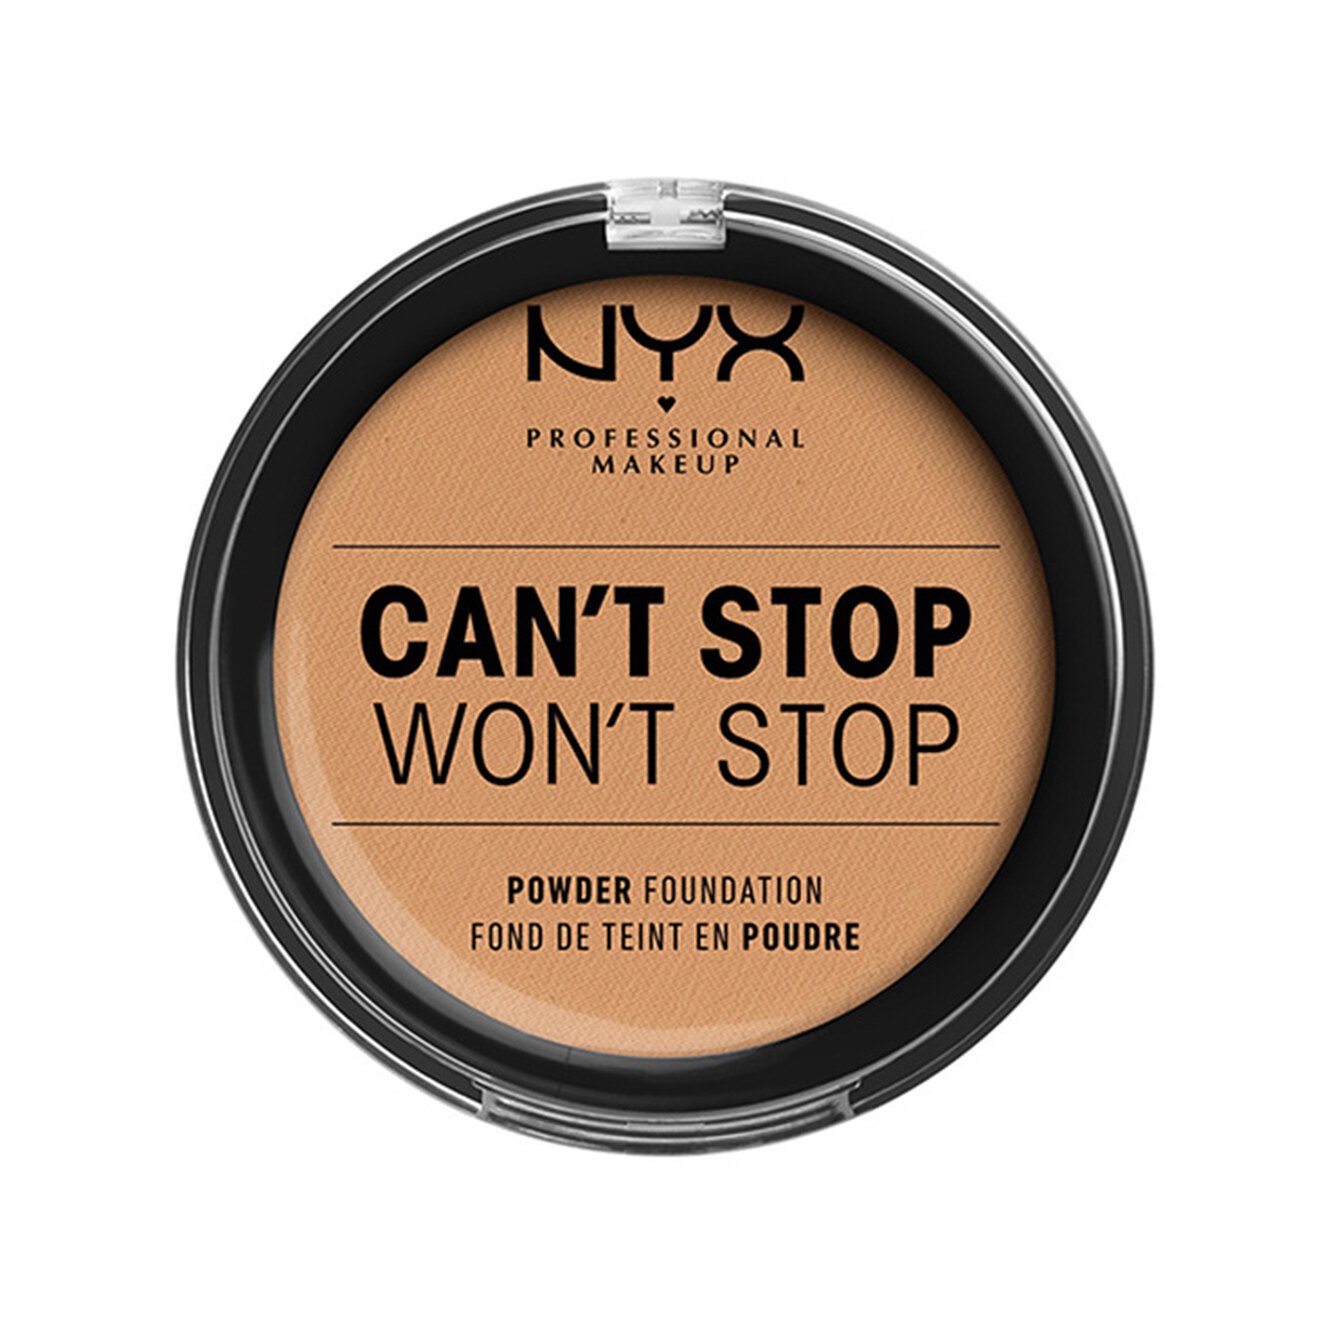 Can't Stop Won't Stop, NYX Professional Makeup